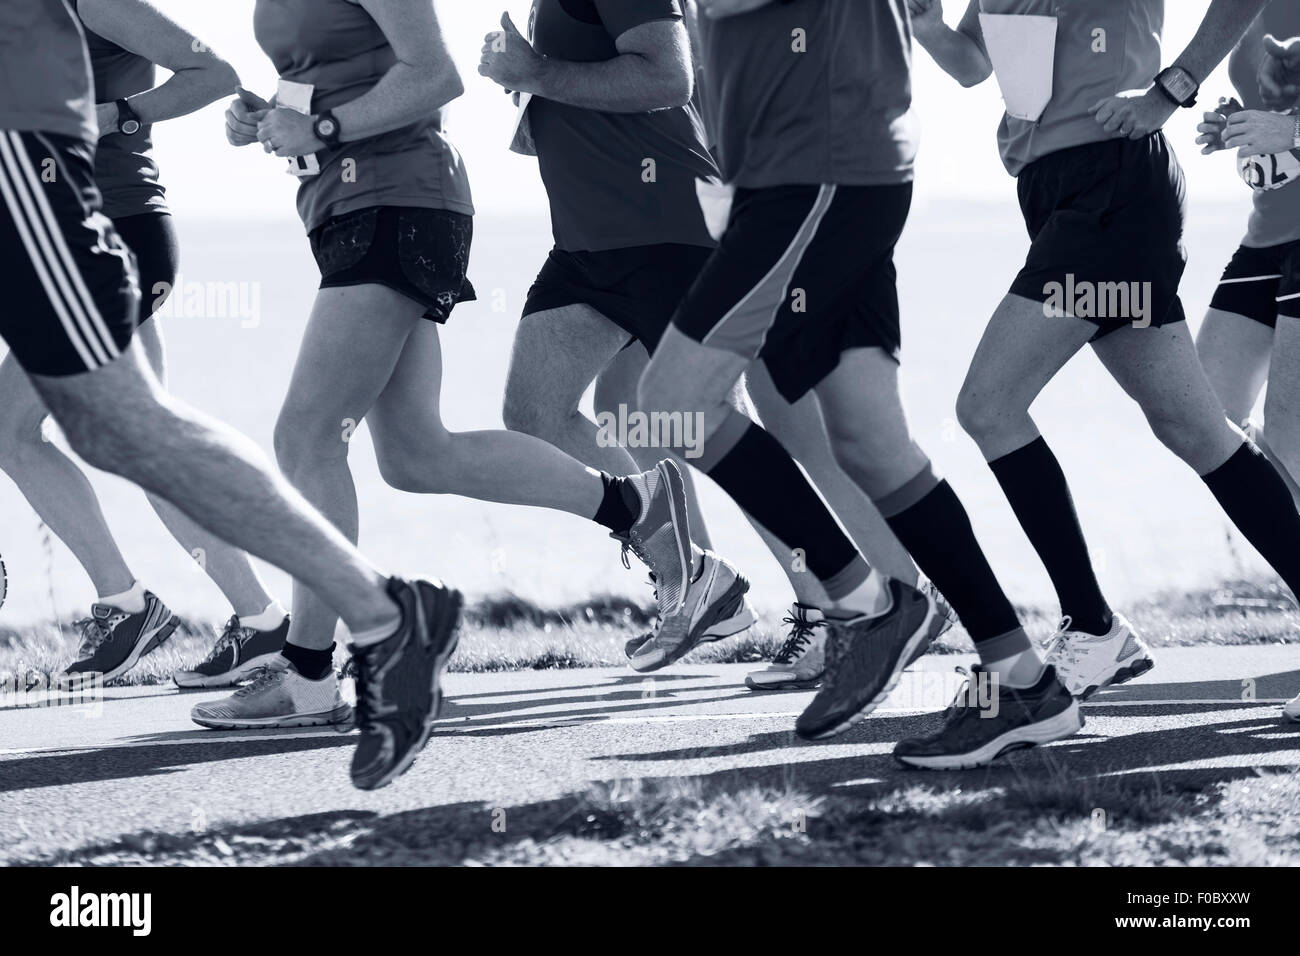 Group of runners compete in the race on coastal road - Stock Image